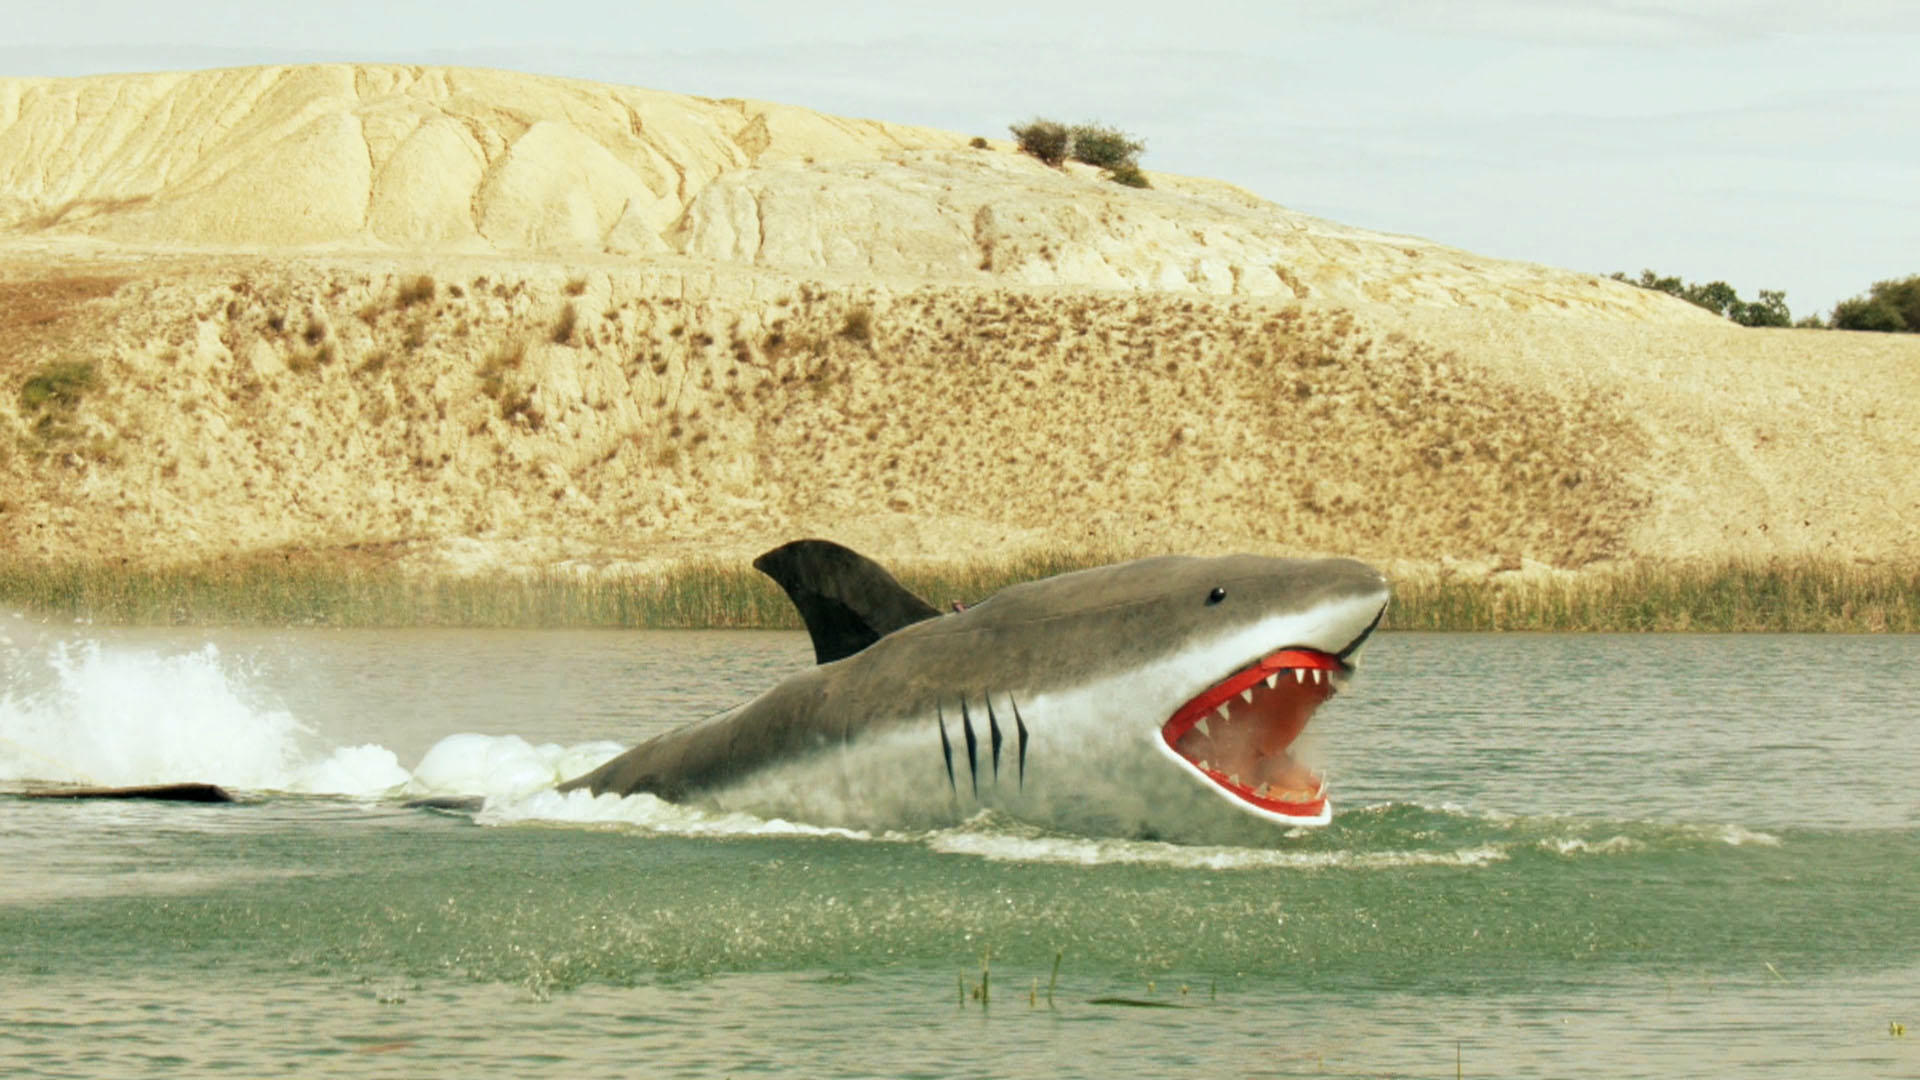 MythBusters: MythBusters: Jaws Special Full Episode | TV Guide